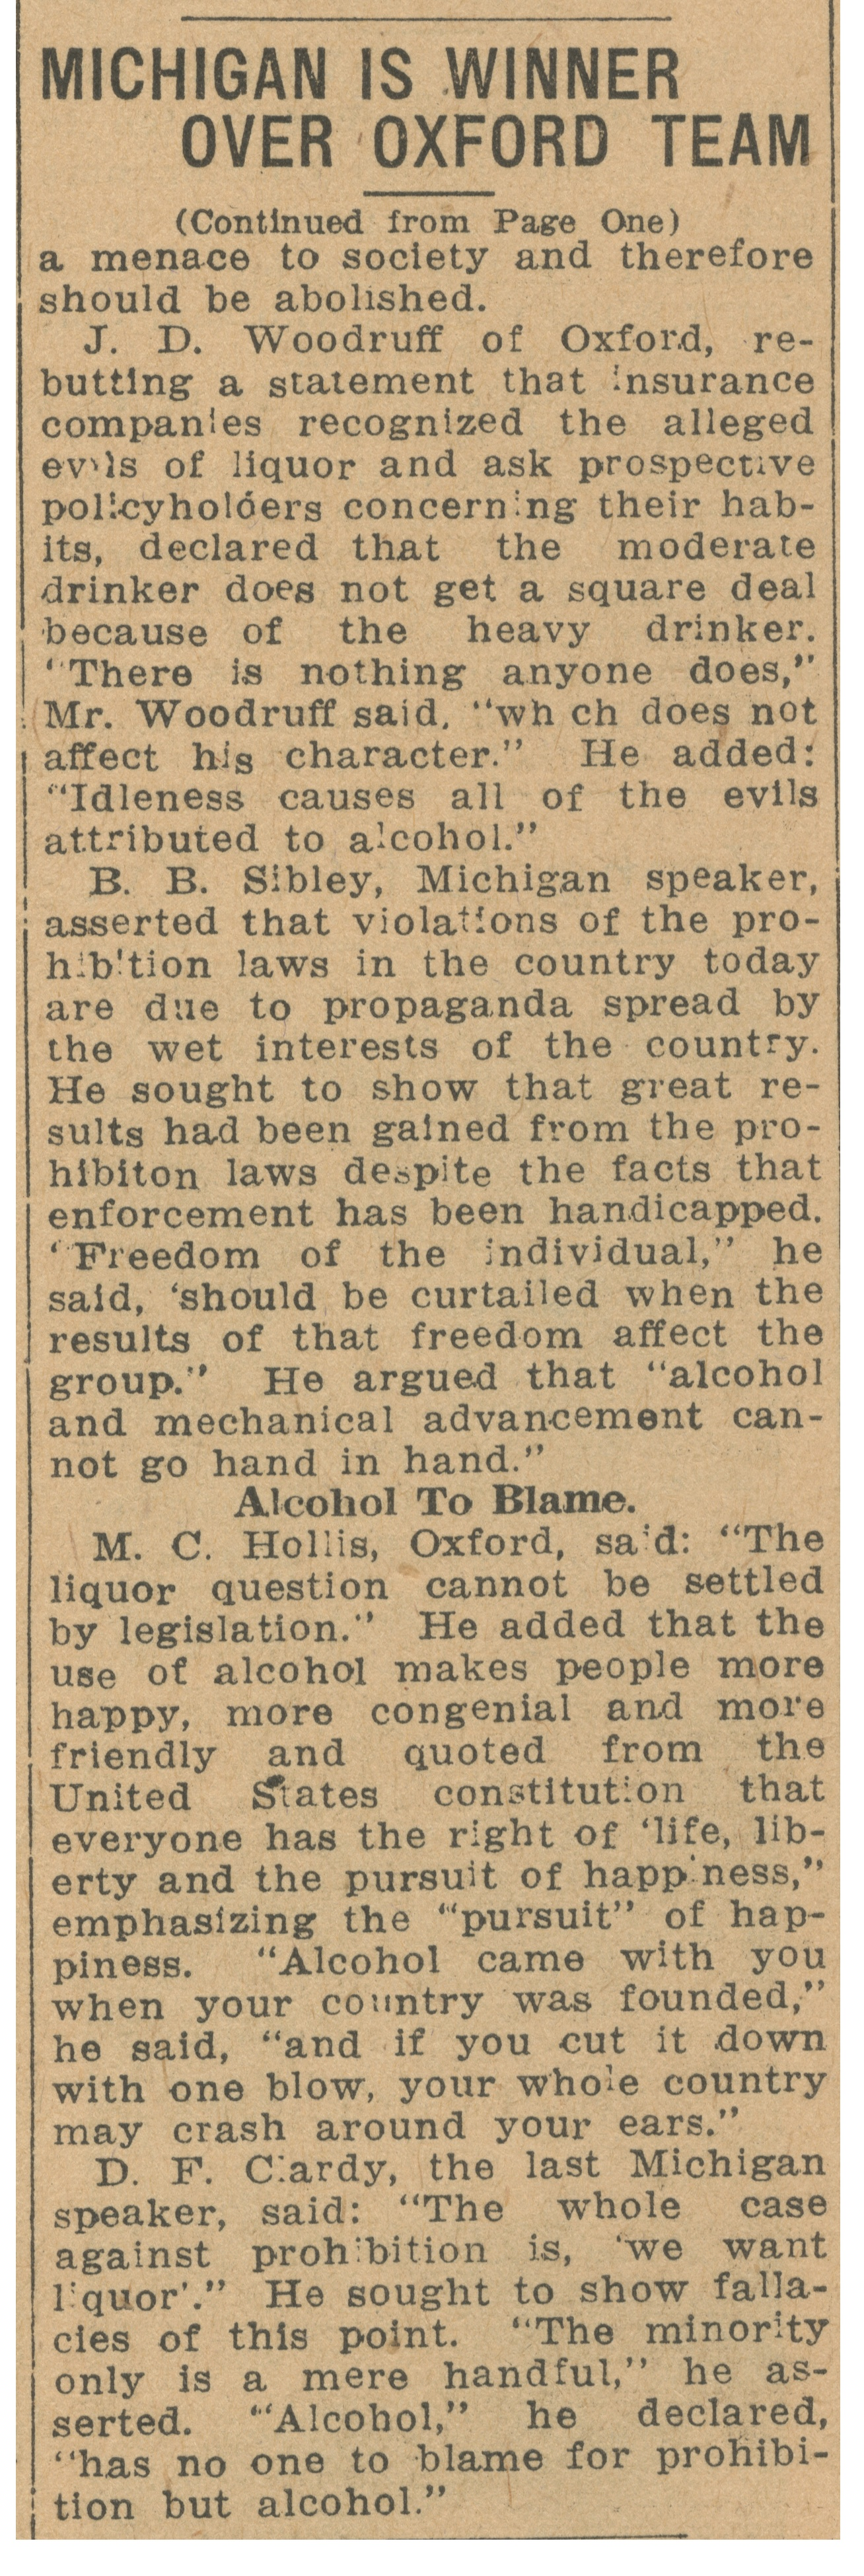 Michigan Is Winner Over Oxford Team: Varsity Debaters Given Decision In International Contest - October 9, 1924 image